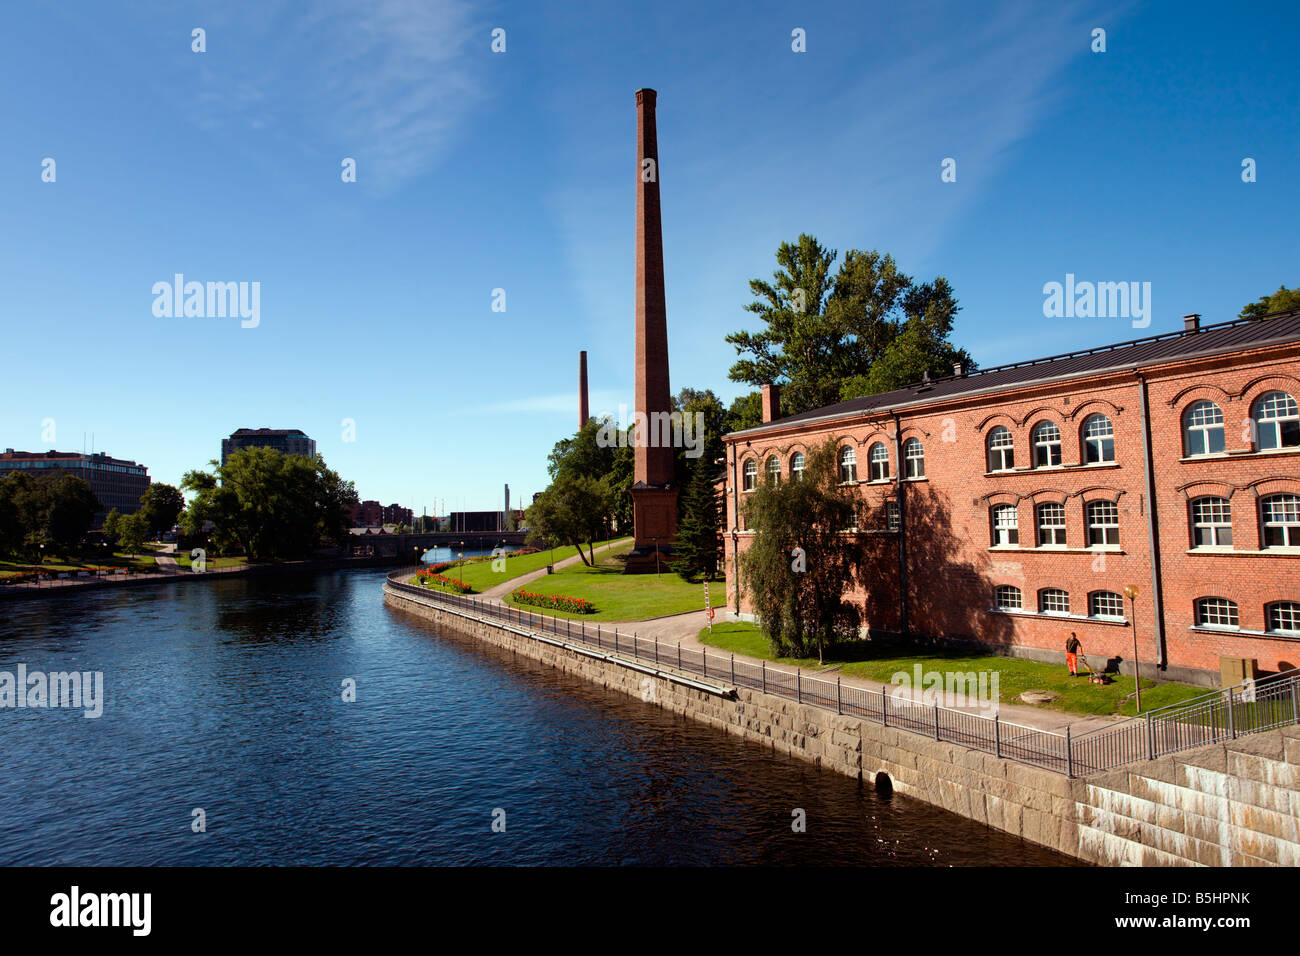 Tampere: Finlayson Factory Old Buildings - Stock Image